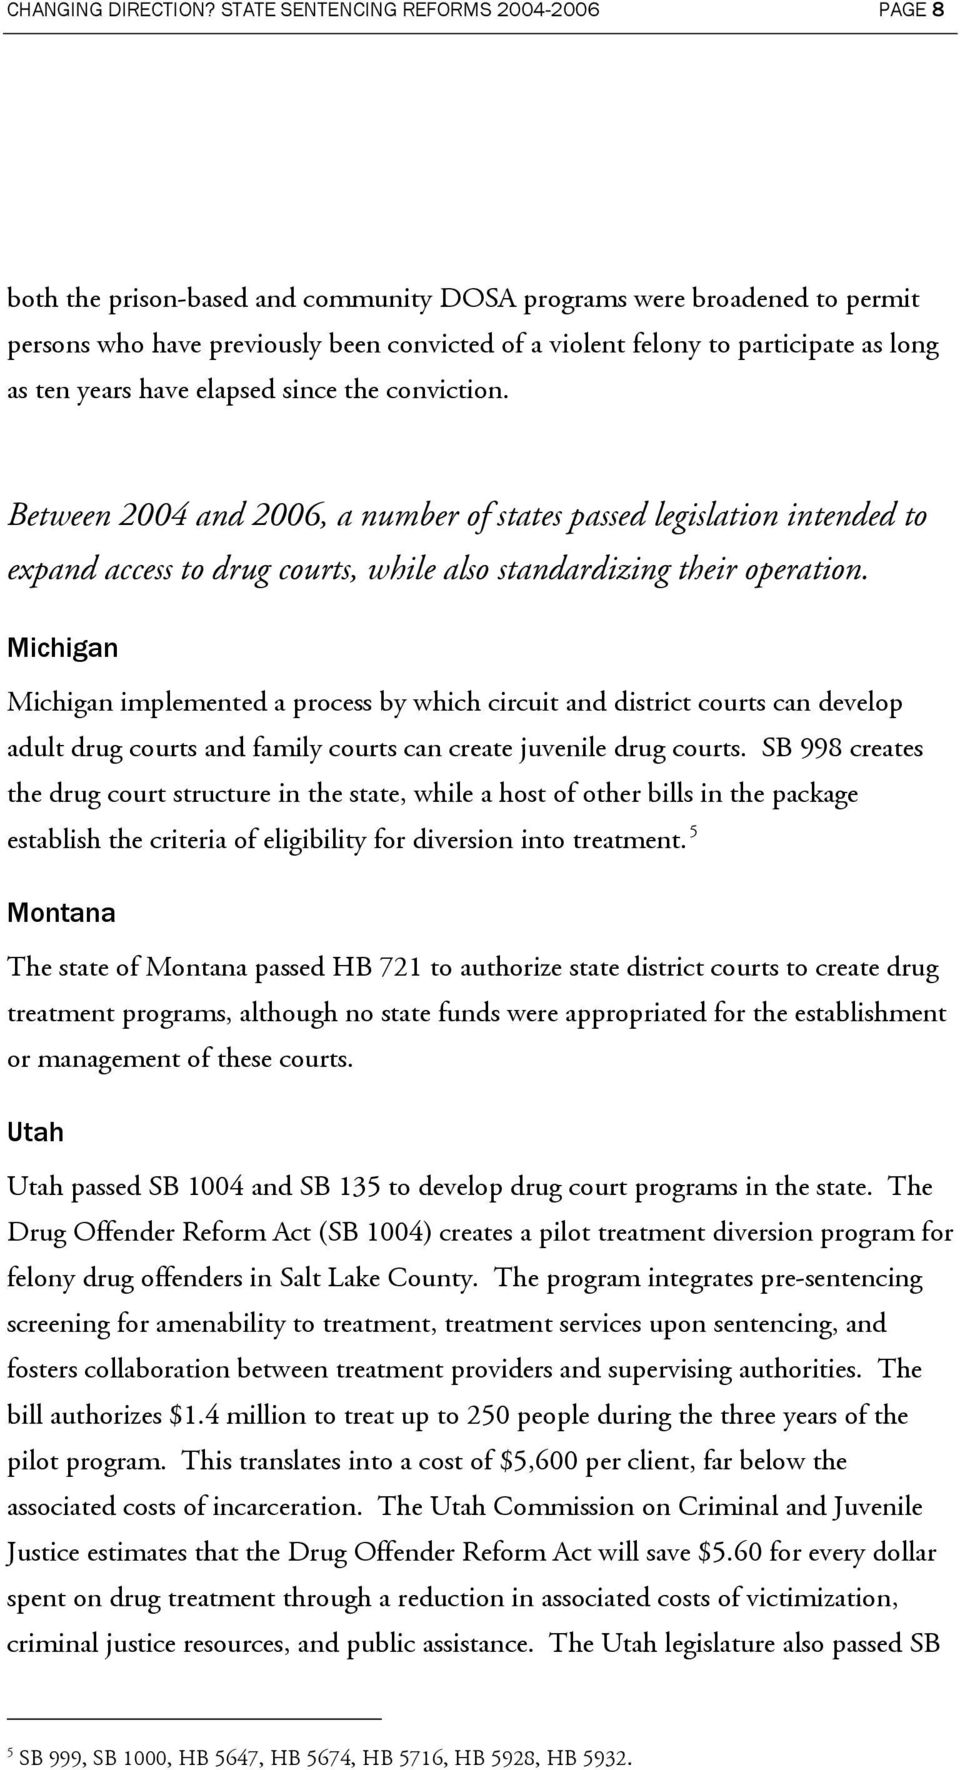 long as ten years have elapsed since the conviction. Between 2004 and 2006, a number of states passed legislation intended to expand access to drug courts, while also standardizing their operation.